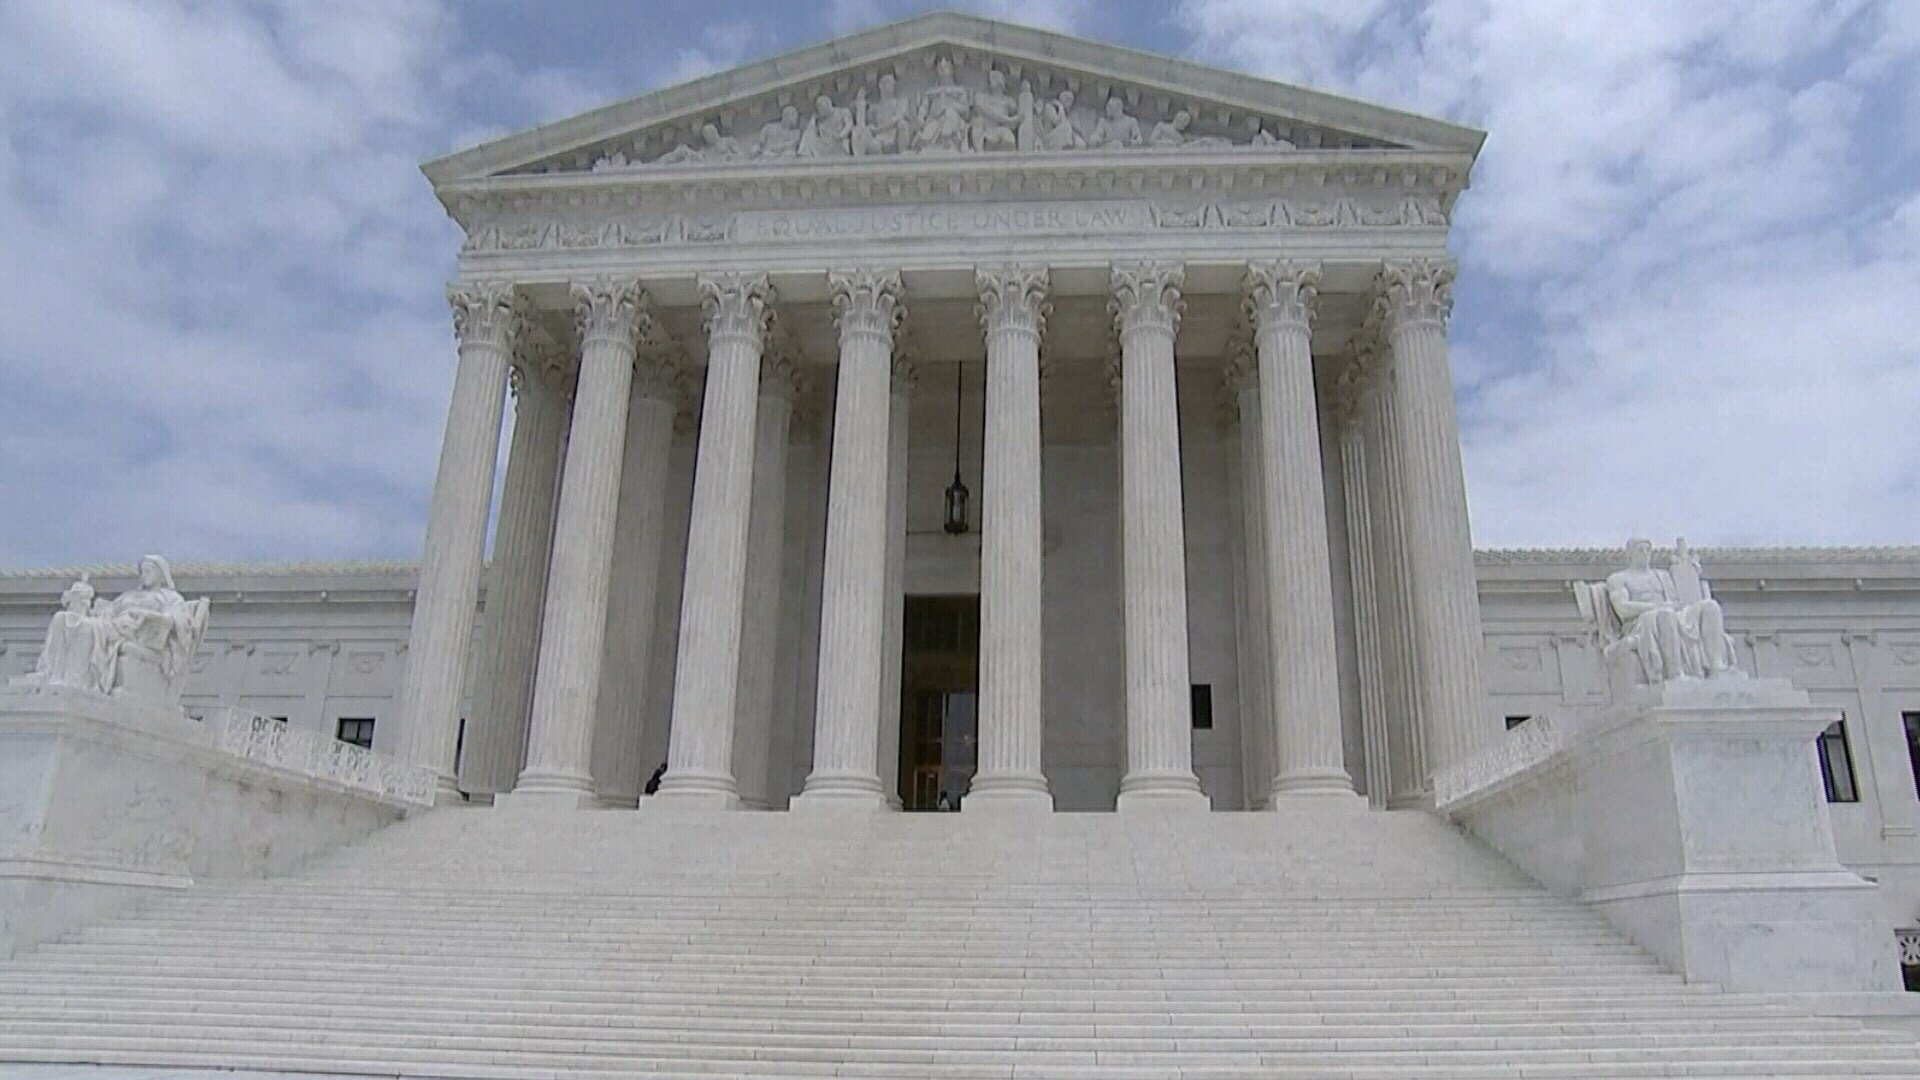 The US Supreme Court Hears Arguments On Texas' Redistricting Maps